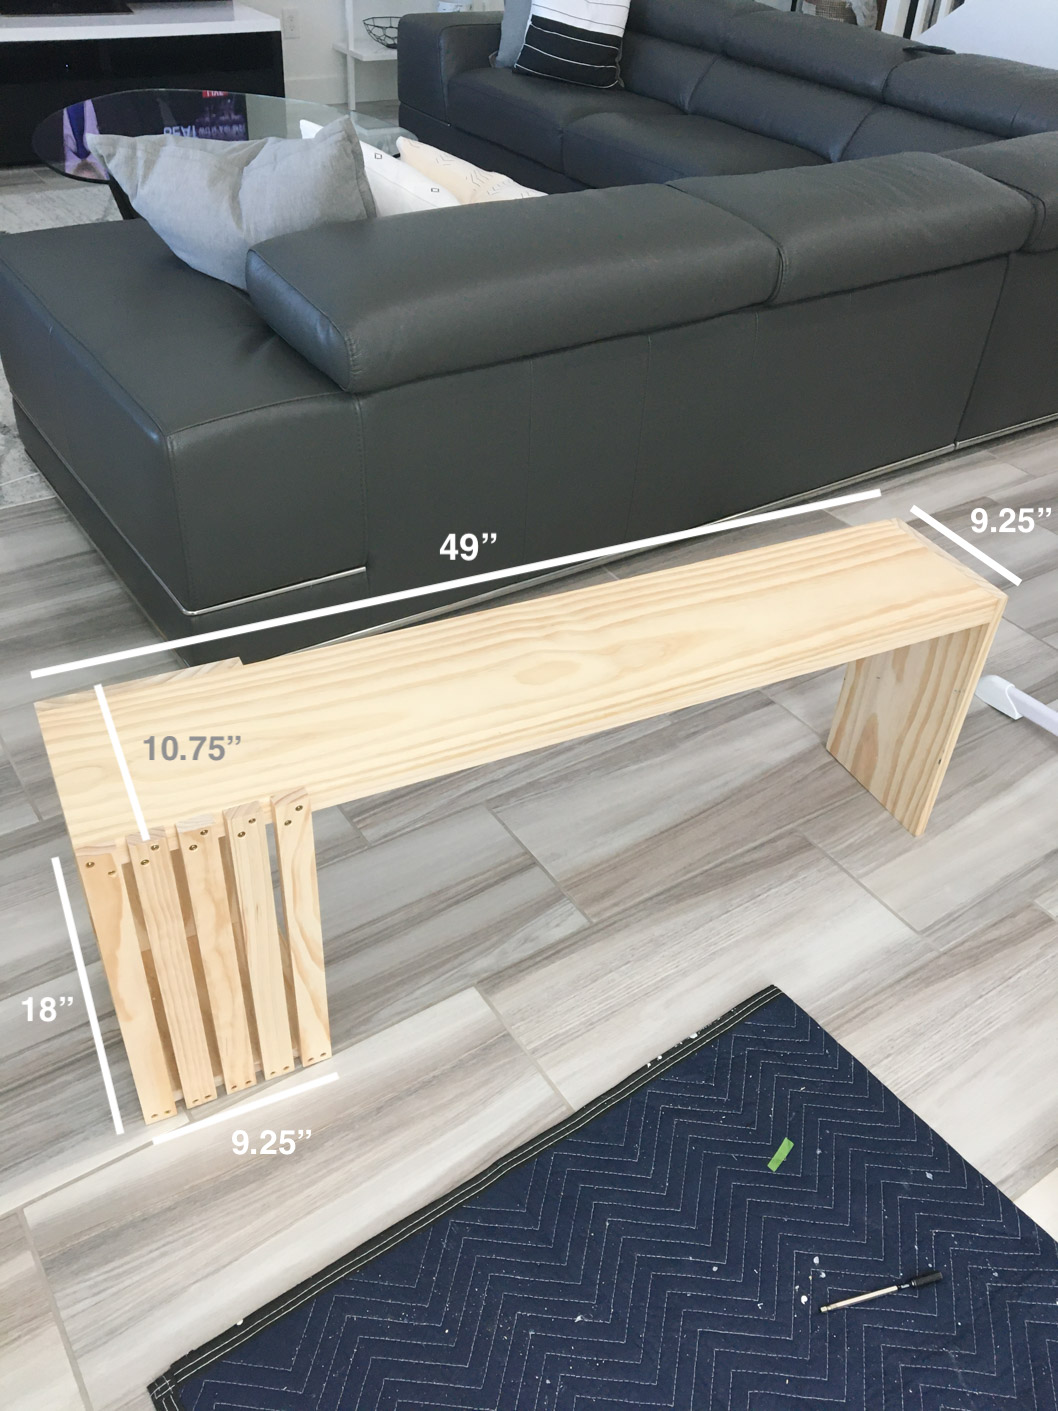 Measurements for DIY bench